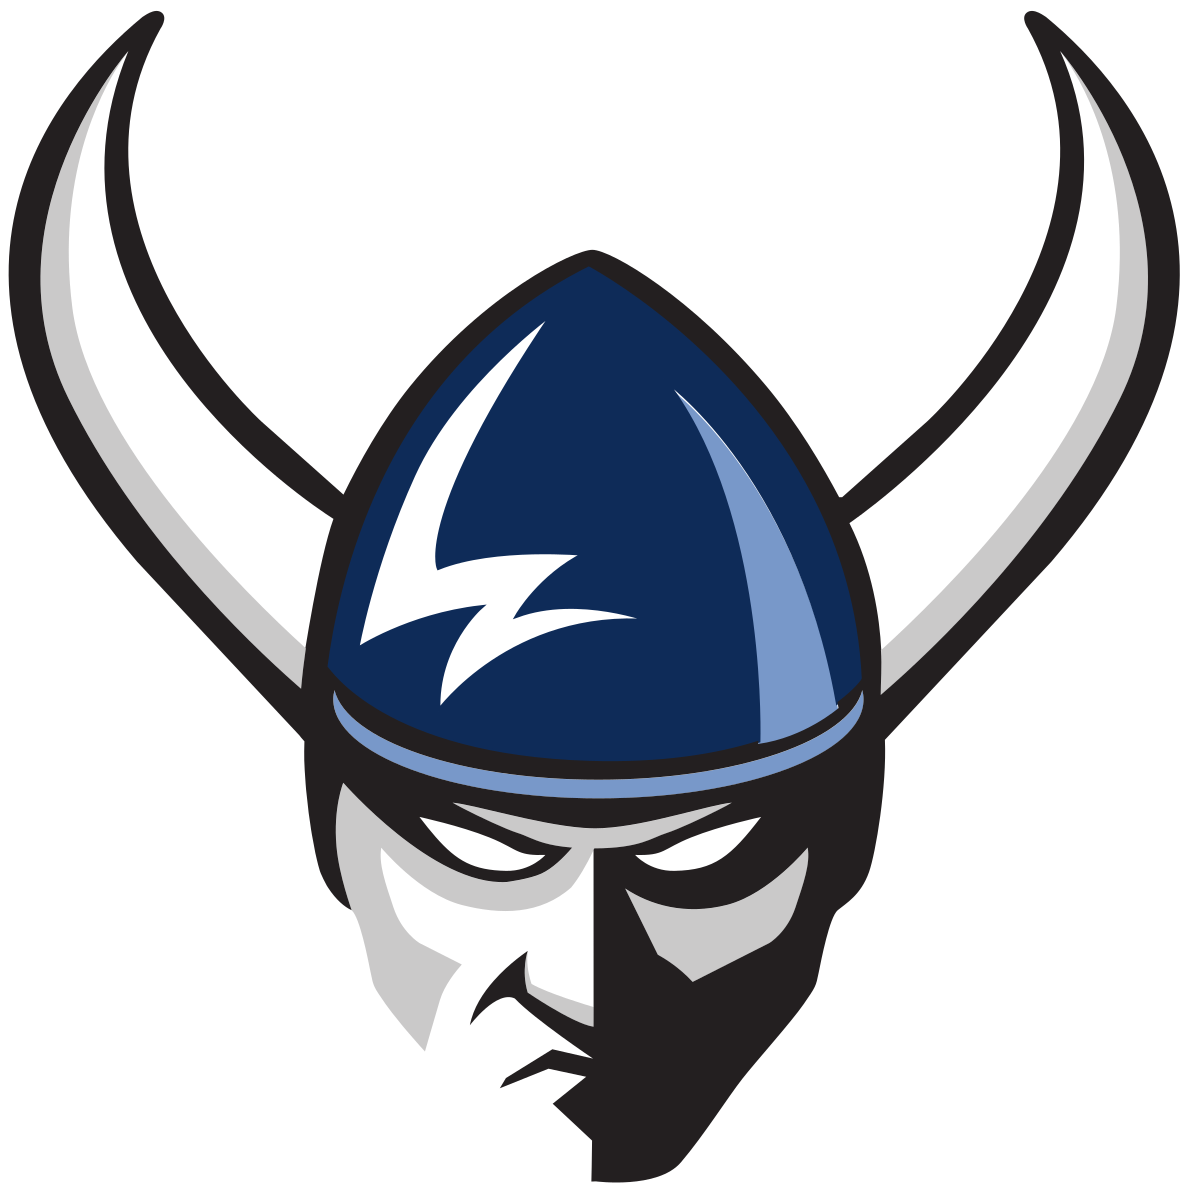 The logo for Western Washington University which s one of the top pacific northwest universities